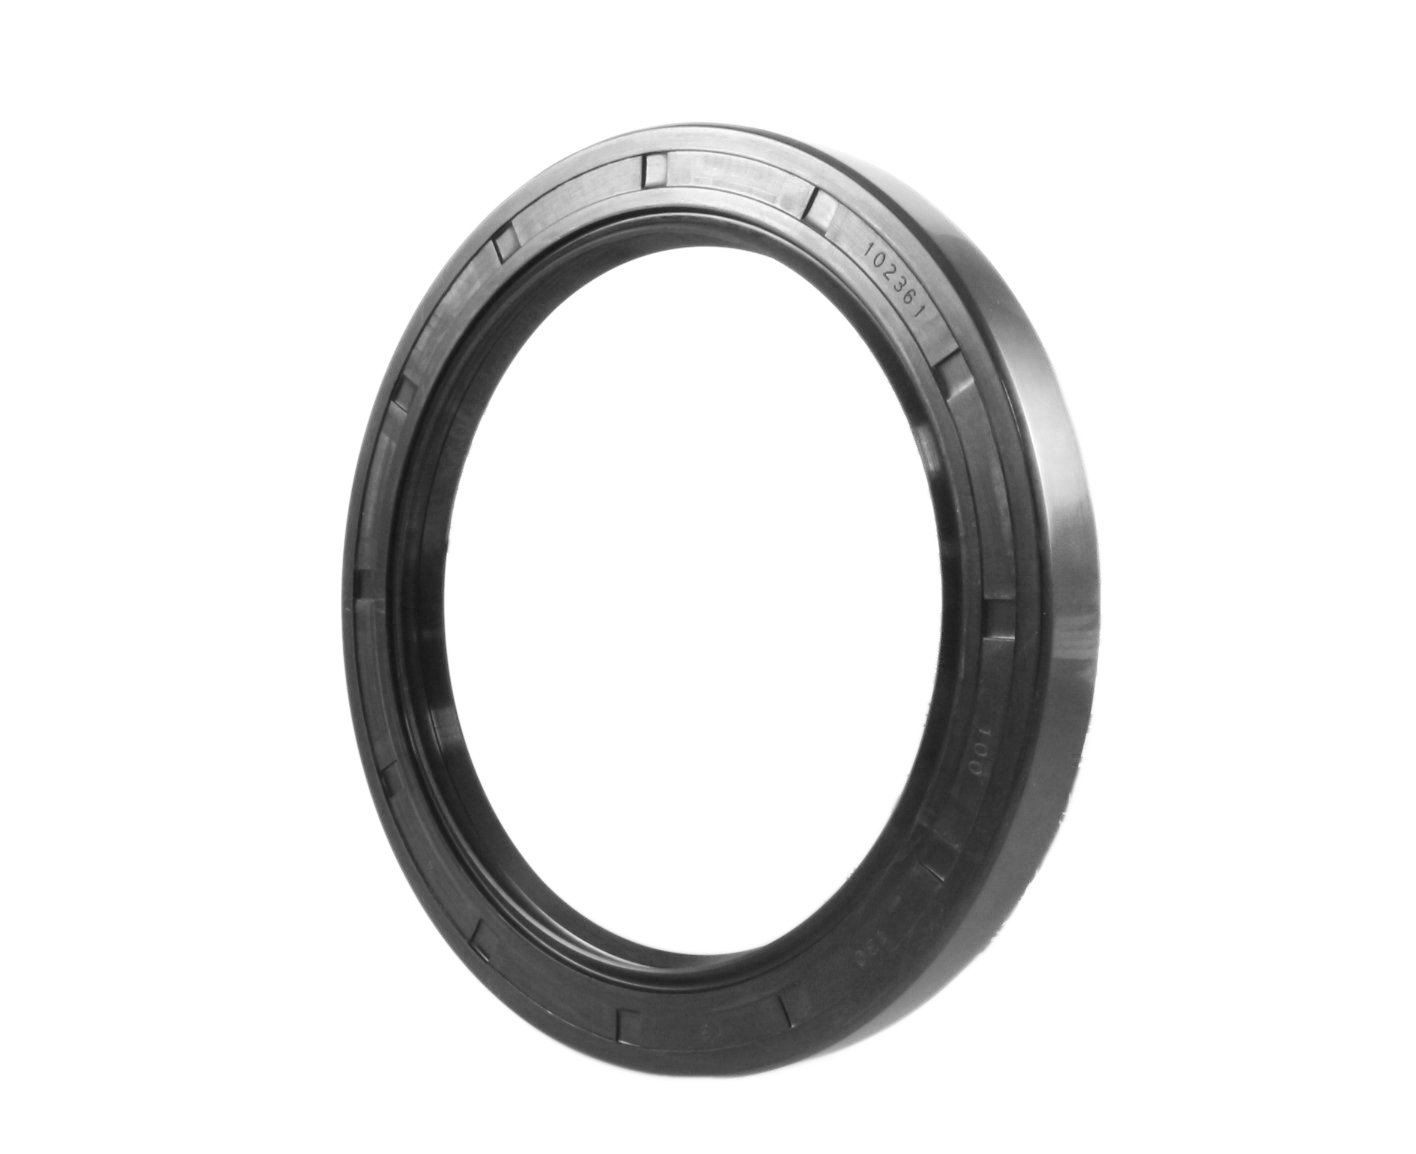 EAI Oil Seal 105mm X Max 79% OFF 130mm 13mm New arrival Metal Lip TC Double w Spring.